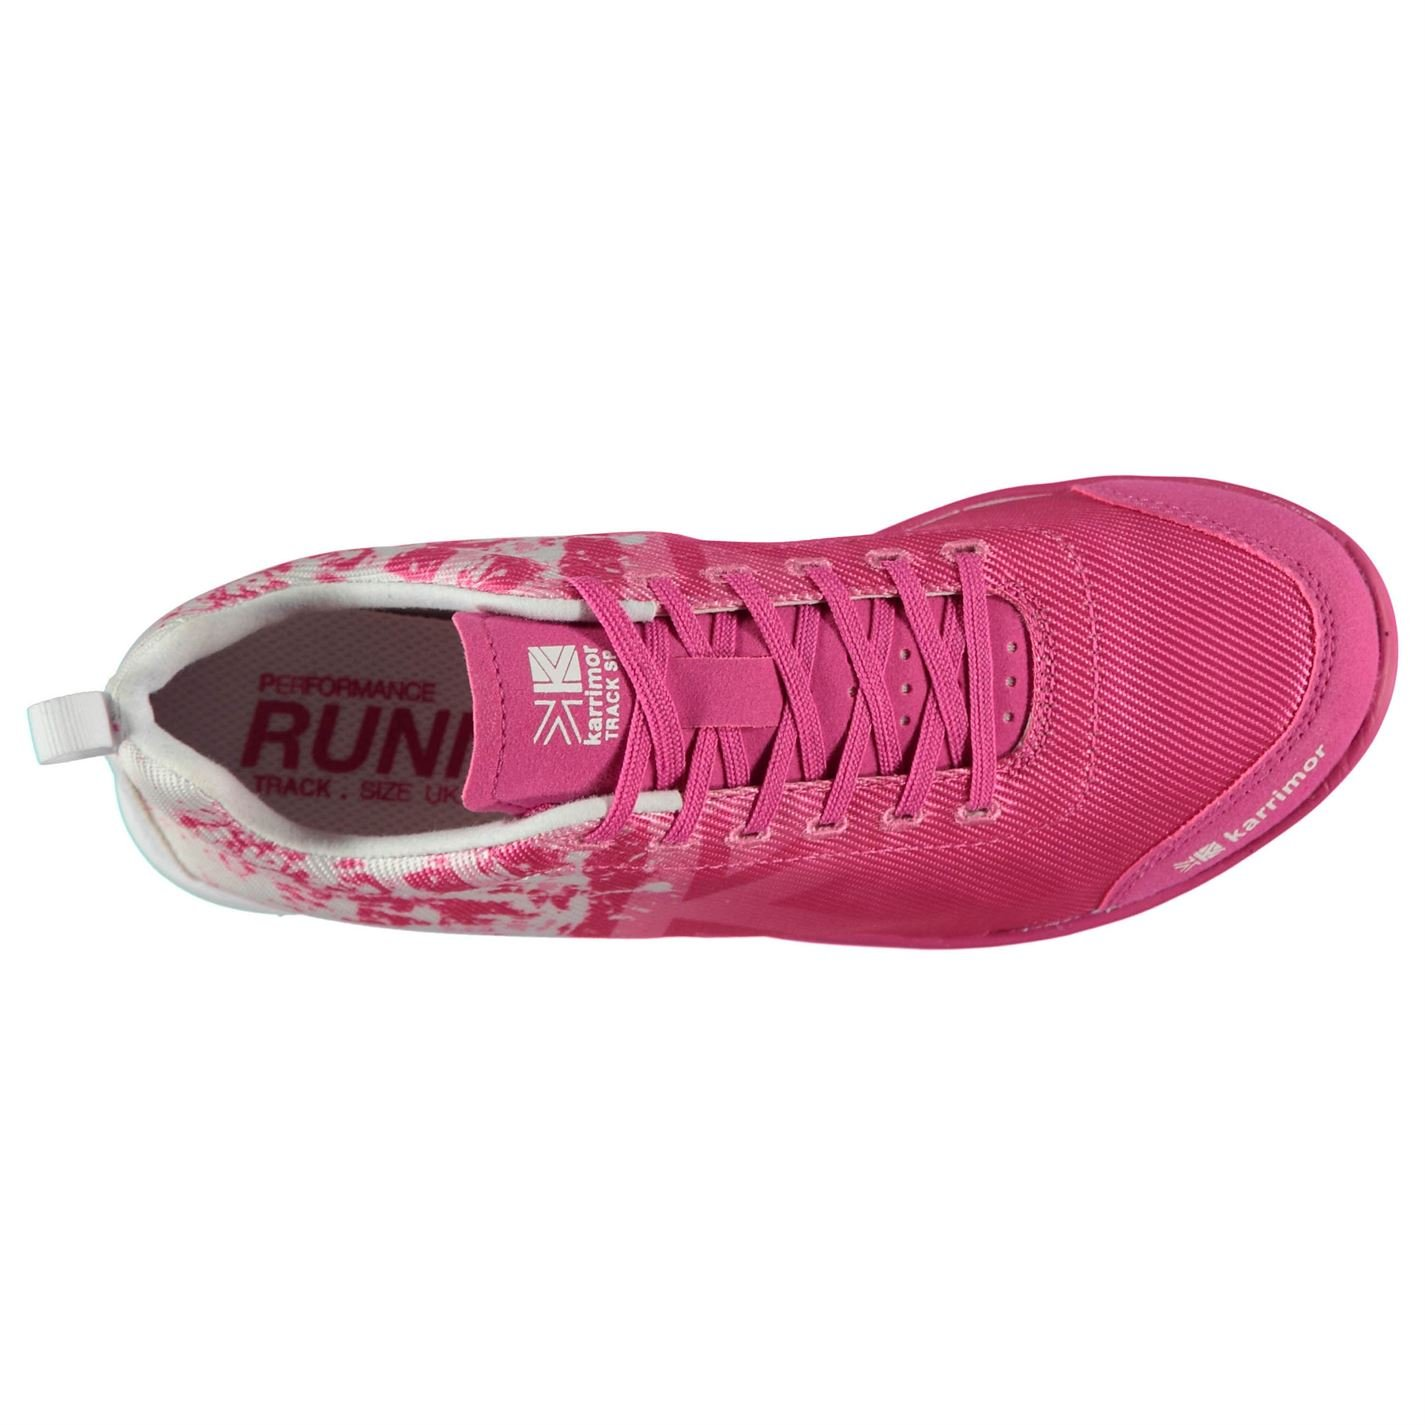 b4b40dc600f4 Karrimor Kids Running Spikes 4 Track Shoes White Pink UK 6 (39)   Amazon.co.uk  Shoes   Bags